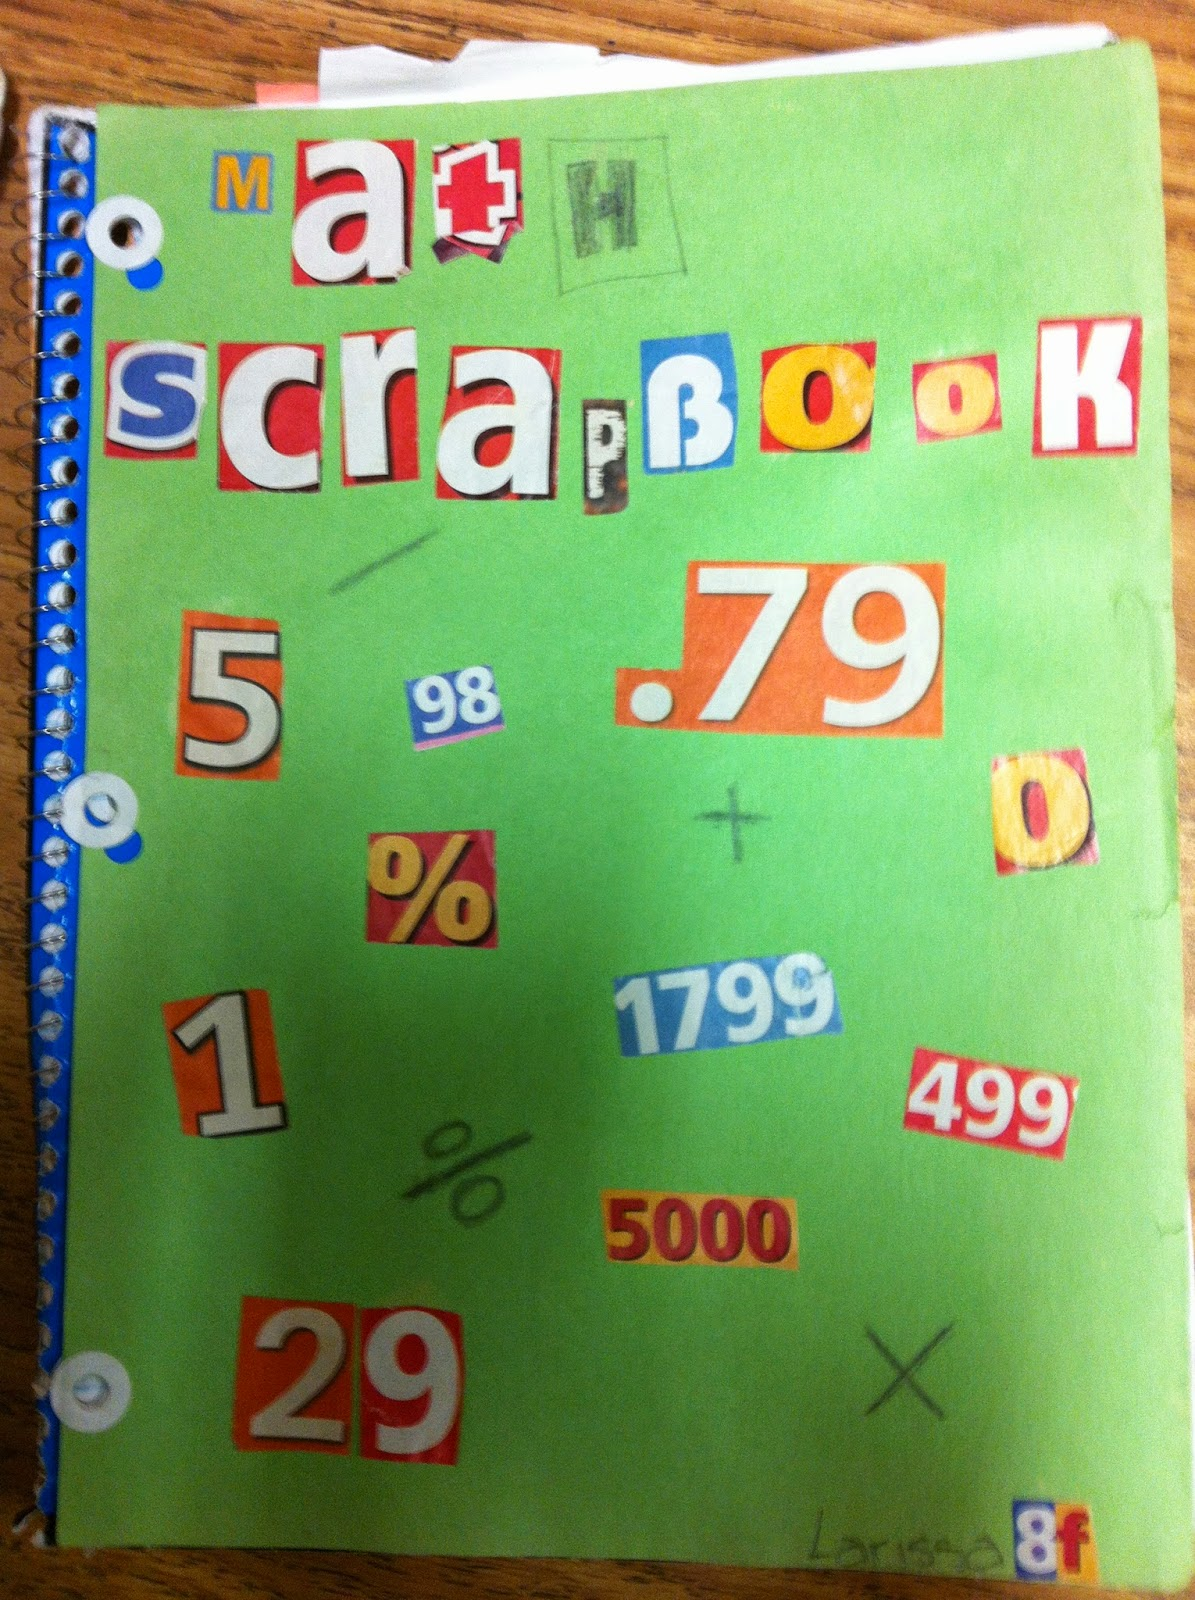 Scrapbook ideas names - The Only Criteria Is That They Have Their Name And Math Scrapbook Somewhere On The Cover Otherwise They Can Decorate As They Like